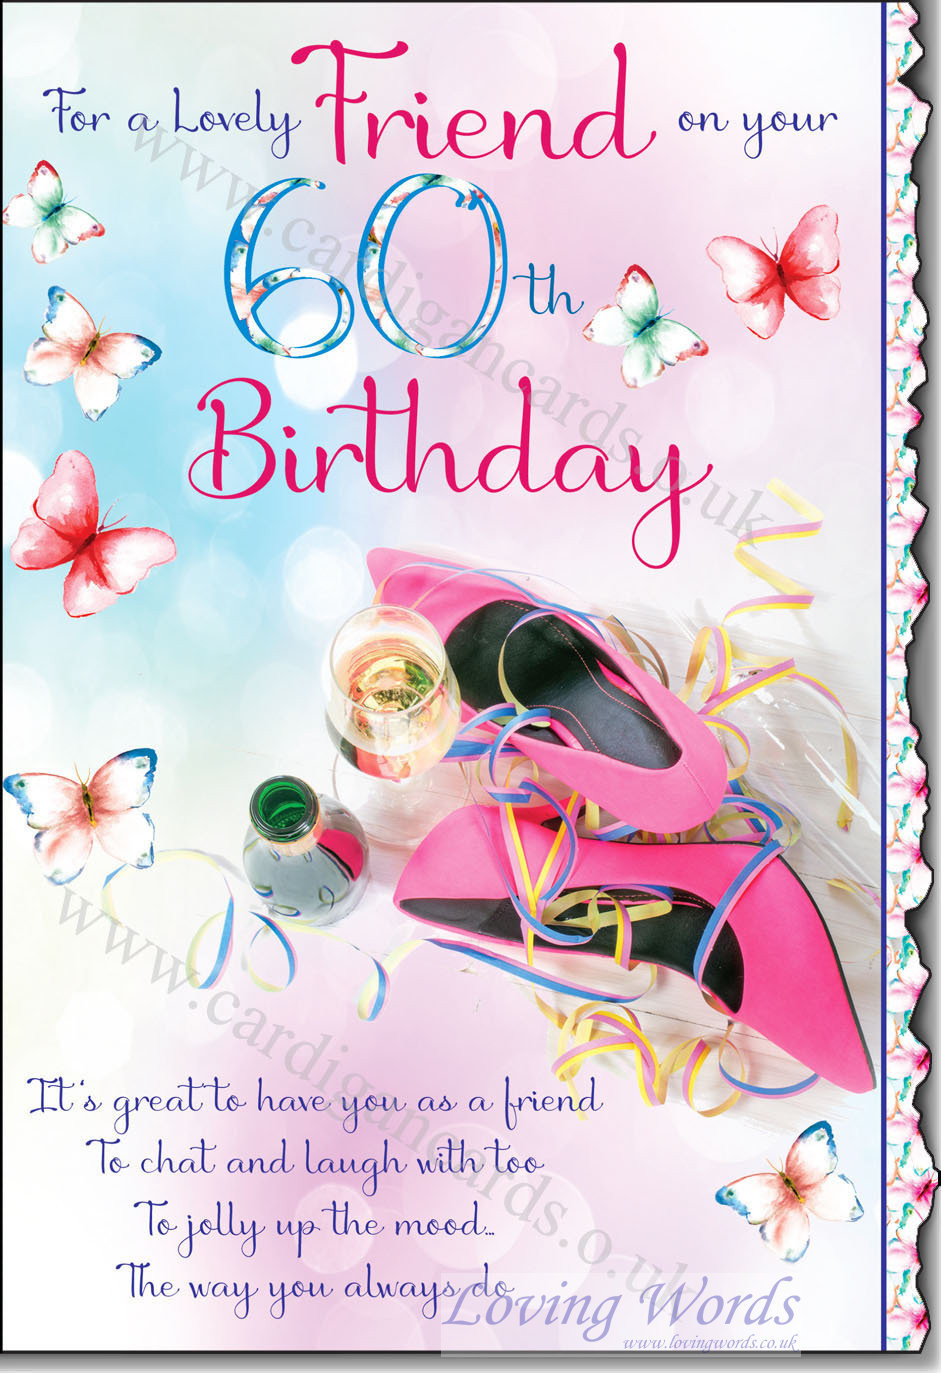 Best ideas about 60th Birthday Wishes For Female Friend . Save or Pin Lovely Friend 60th Birthday Now.